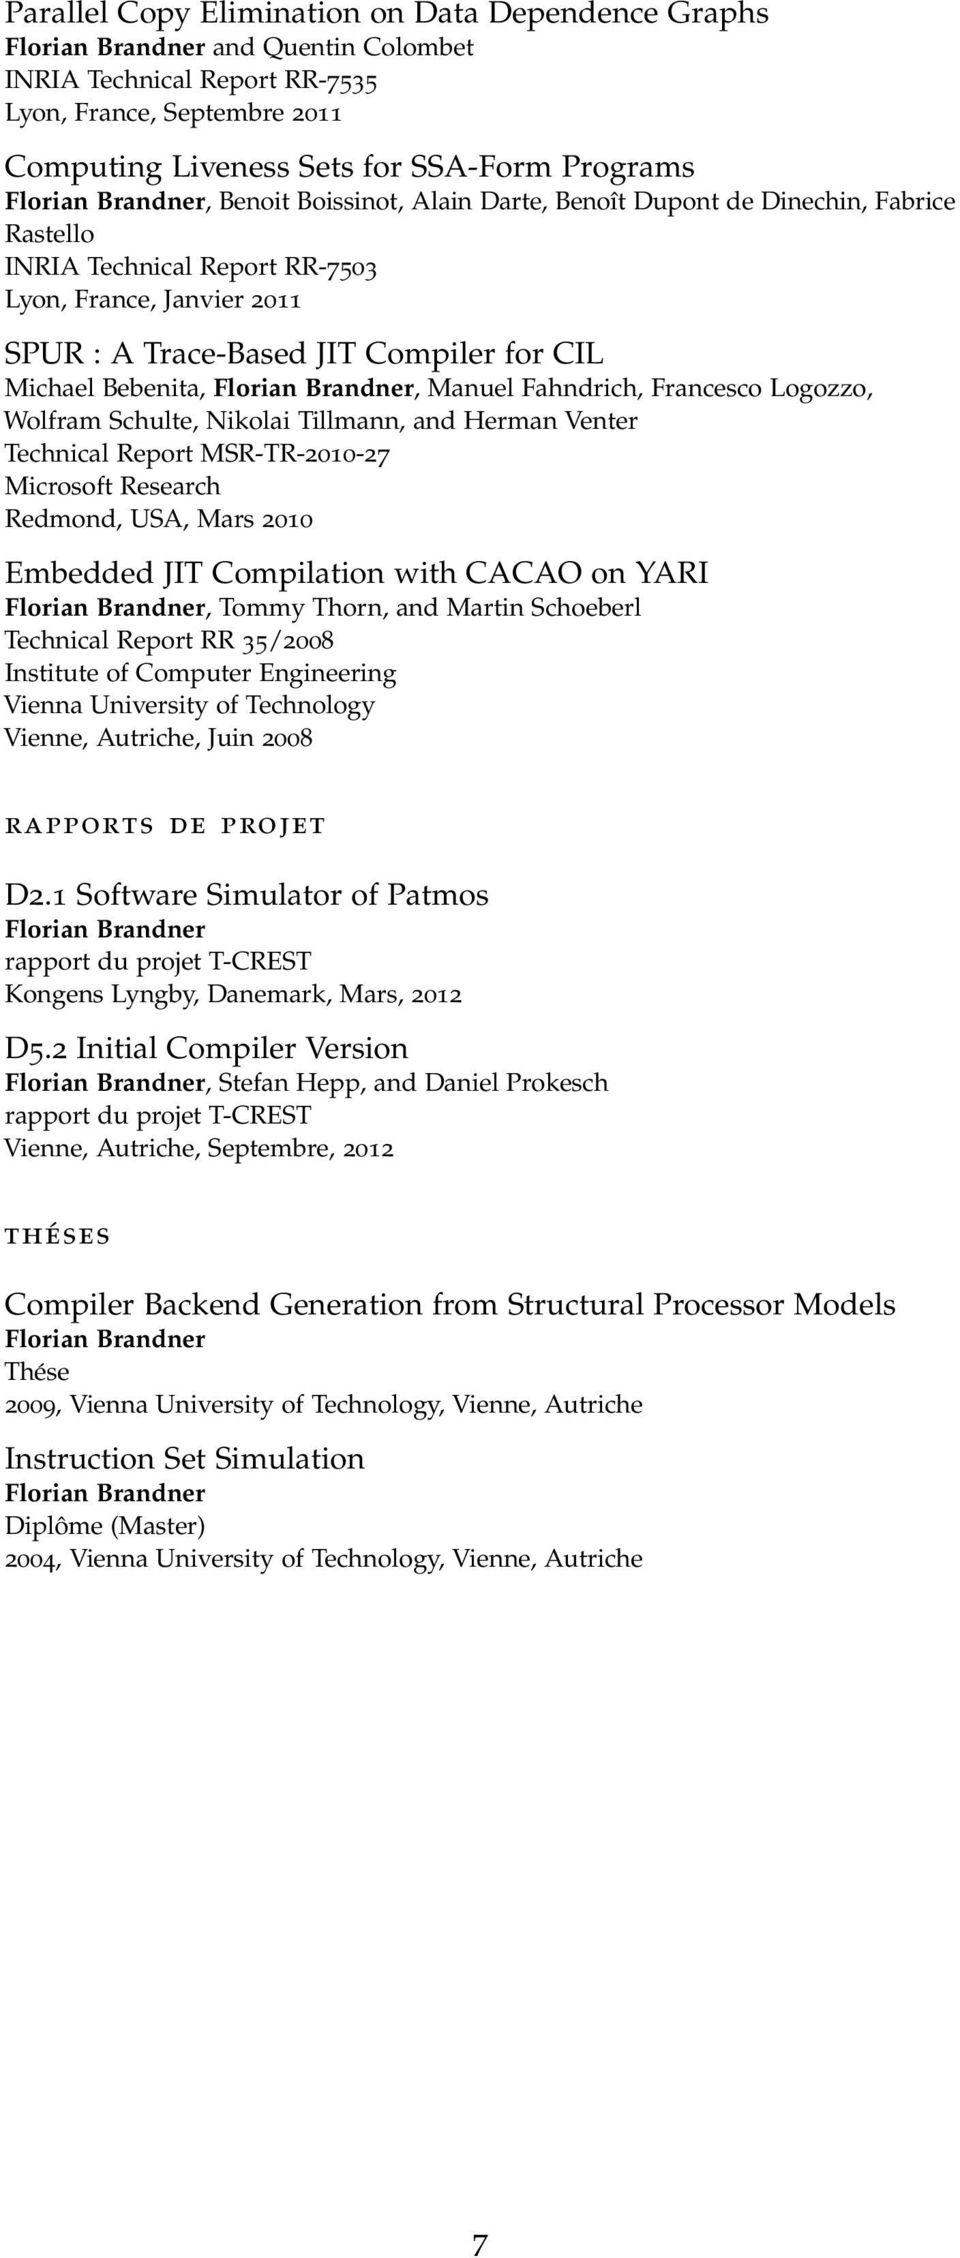 Francesco Logozzo, Wolfram Schulte, Nikolai Tillmann, and Herman Venter Technical Report MSR-TR-2010-27 Microsoft Research Redmond, USA, Mars 2010 Embedded JIT Compilation with CACAO on YARI, Tommy